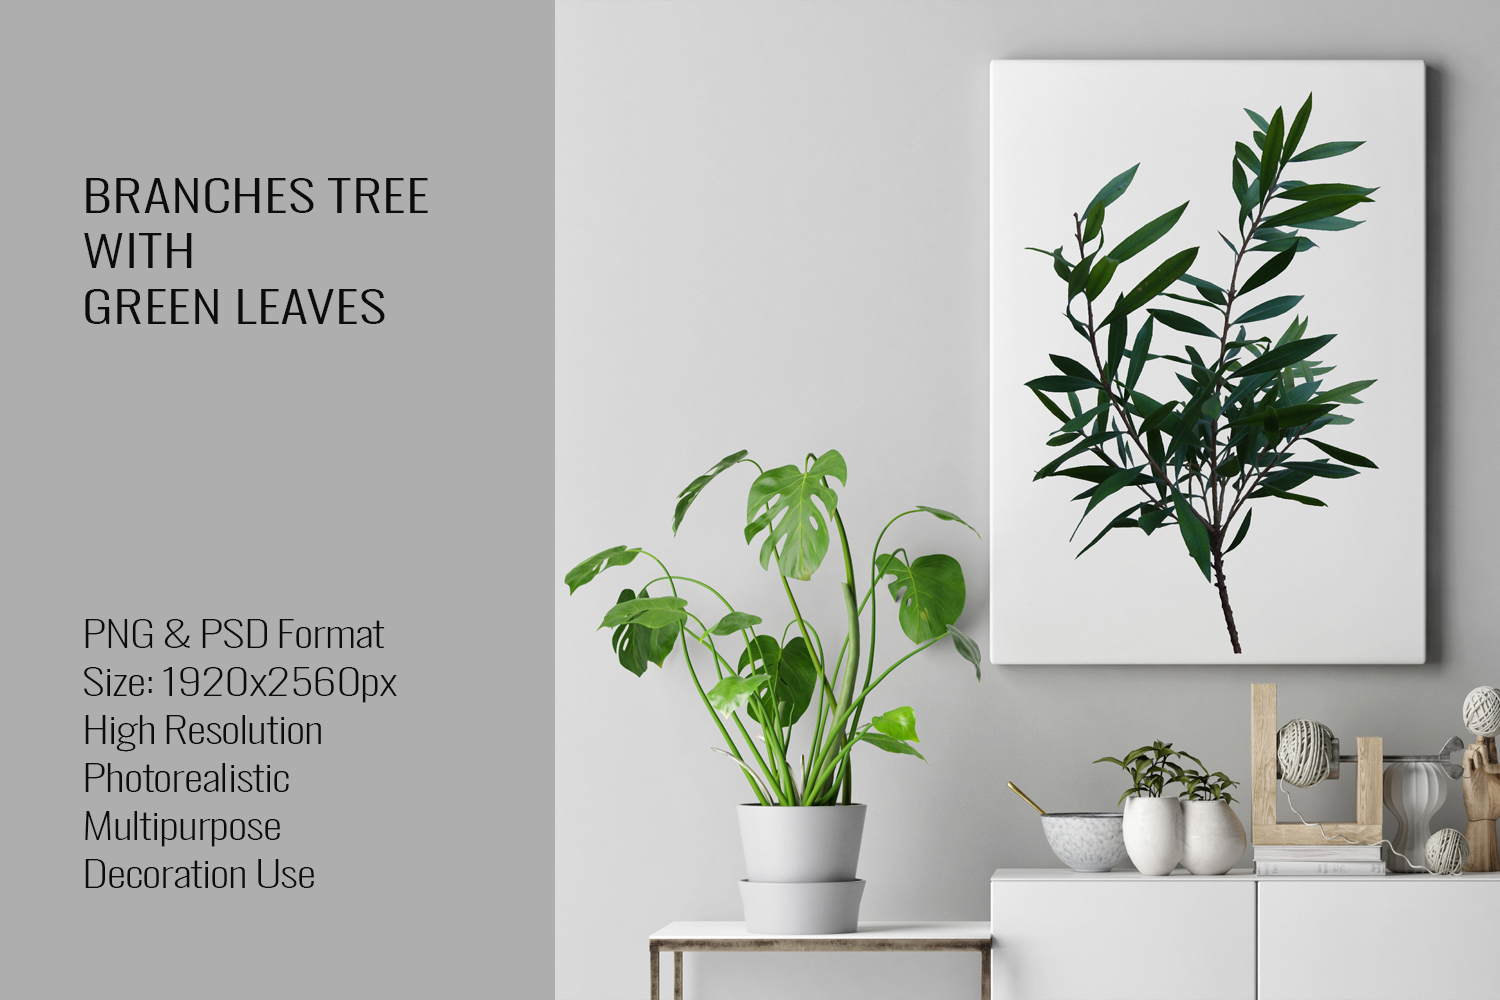 Three Branches Tree With Green Leaves PNG|PSD example image 3